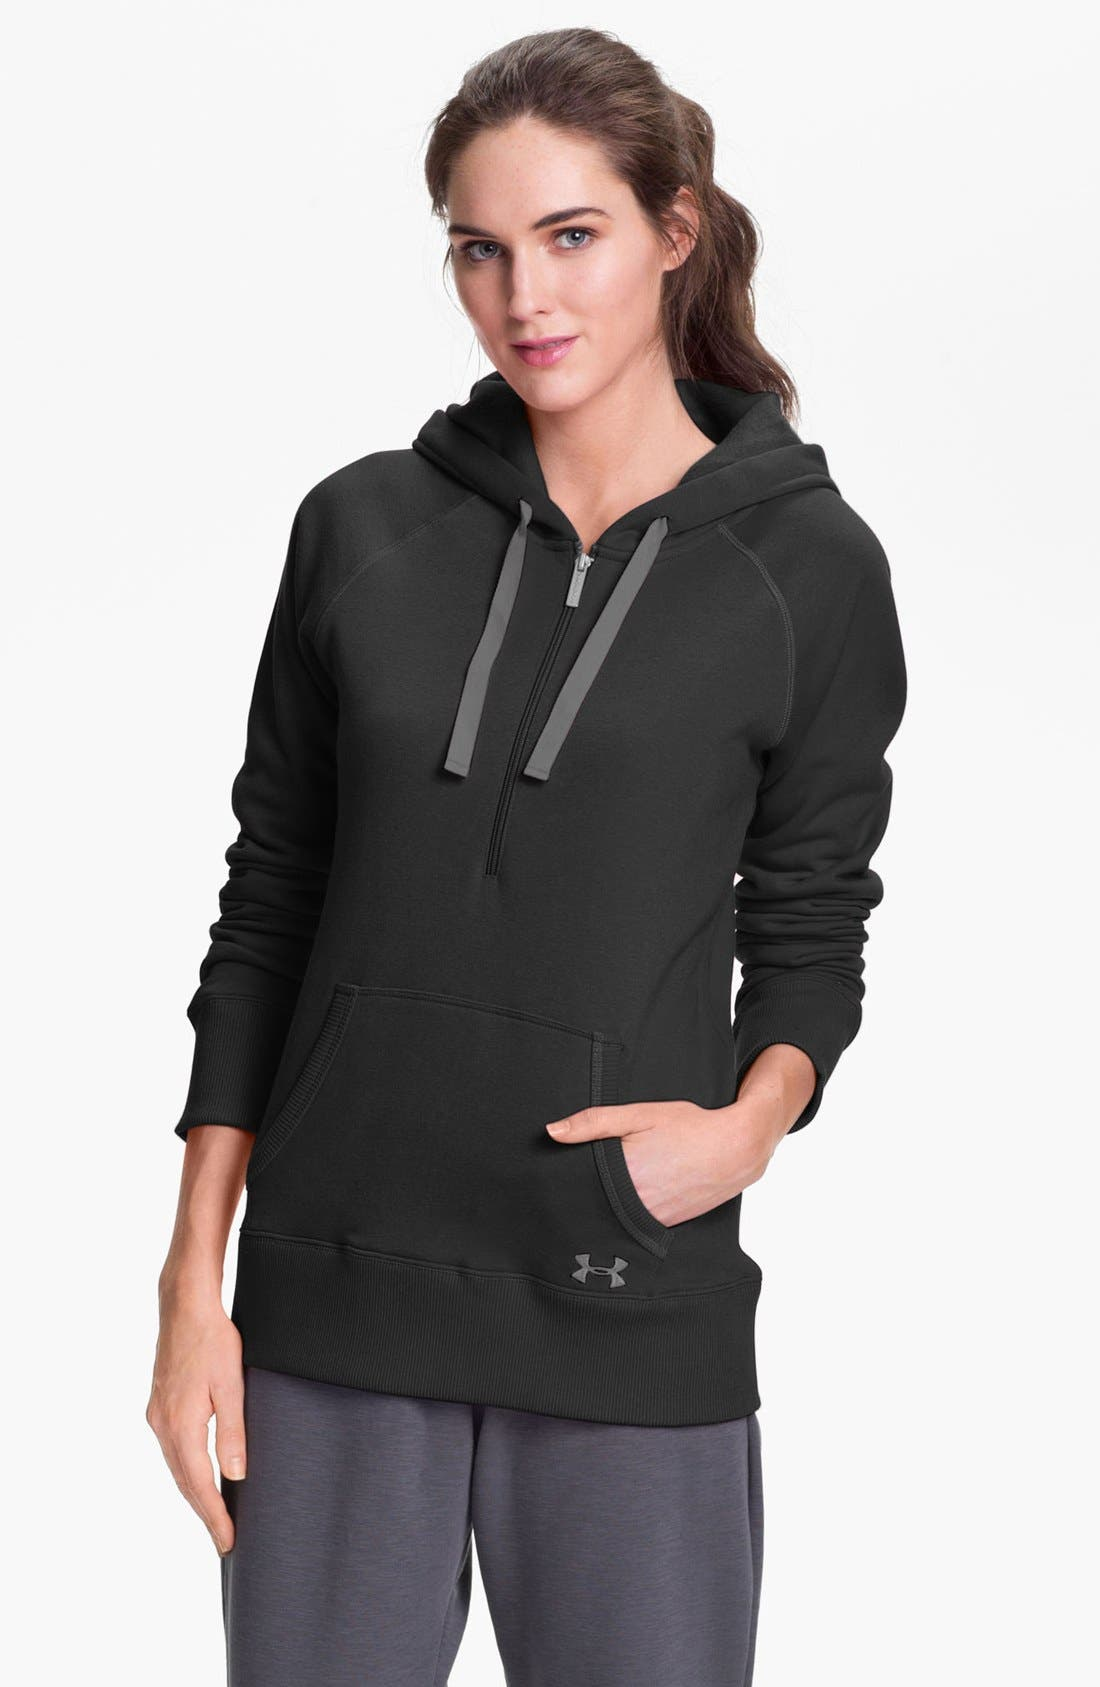 Main Image - Under Armour 'Storm' Half-Zip Charged Cotton Hoodie